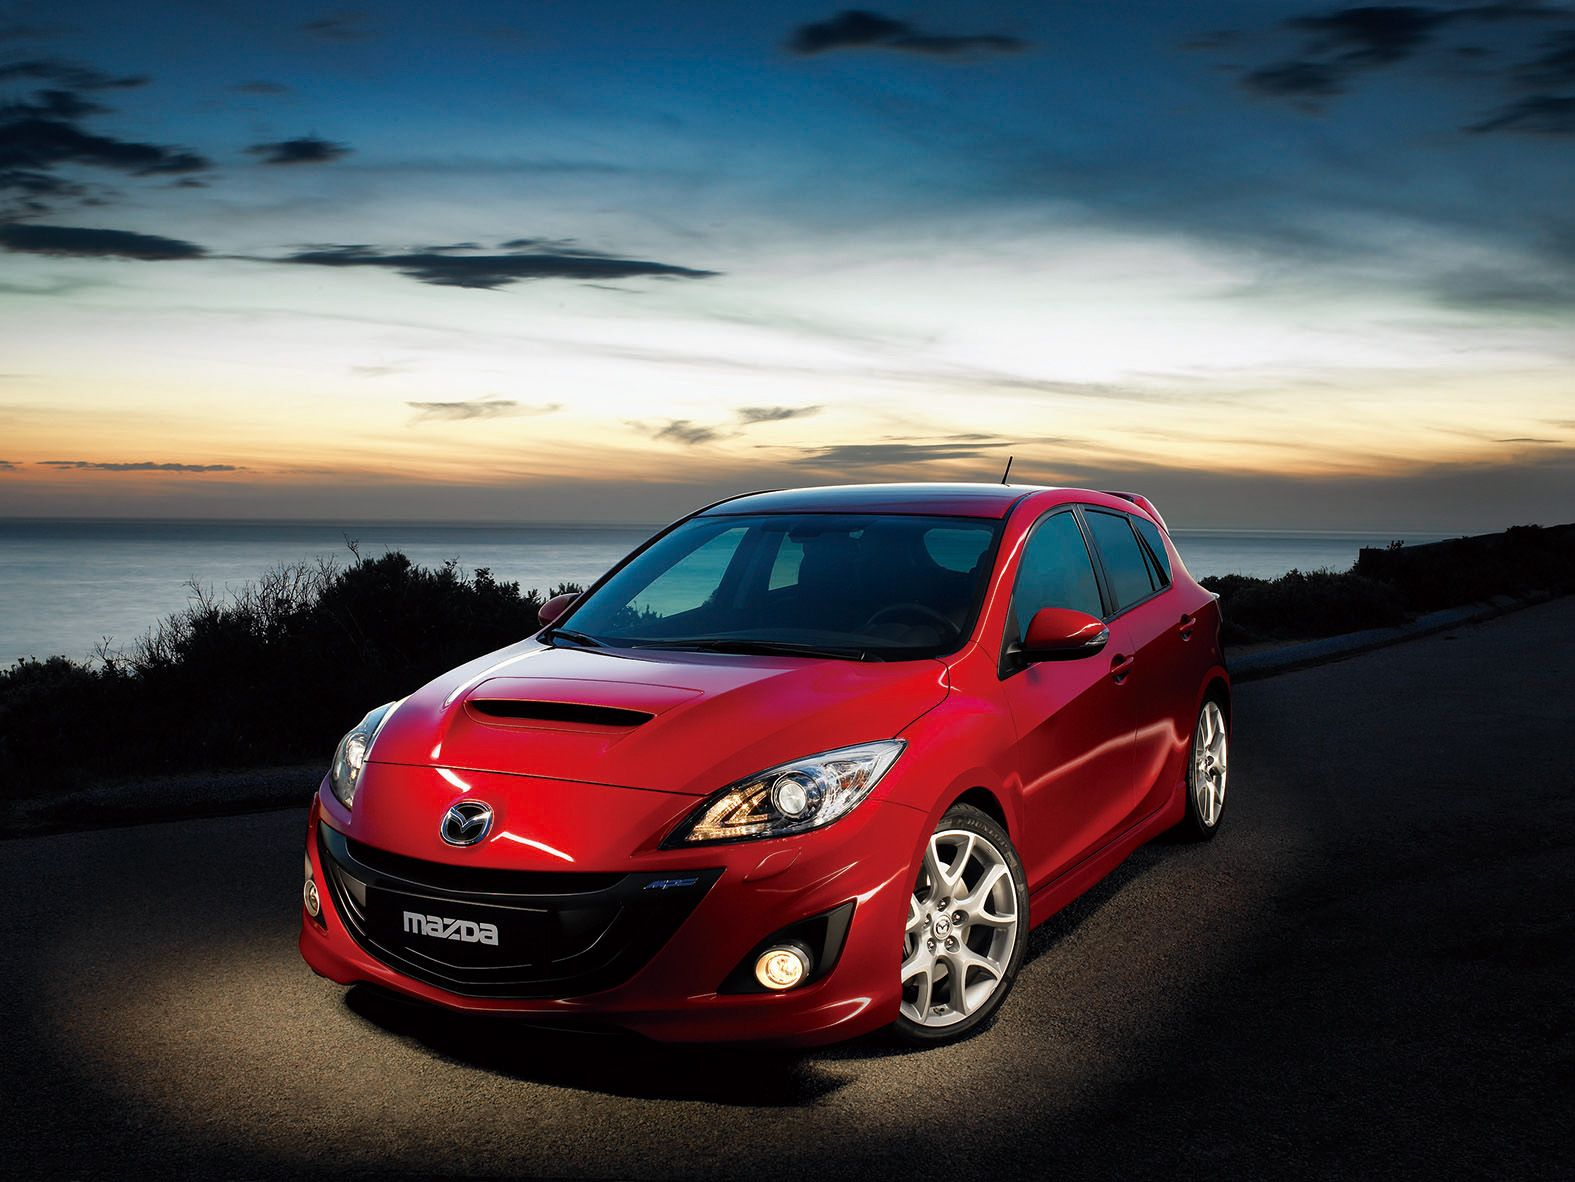 2010 Mazda3 MPS | MazdaSpeed3 | Pinterest | Cars